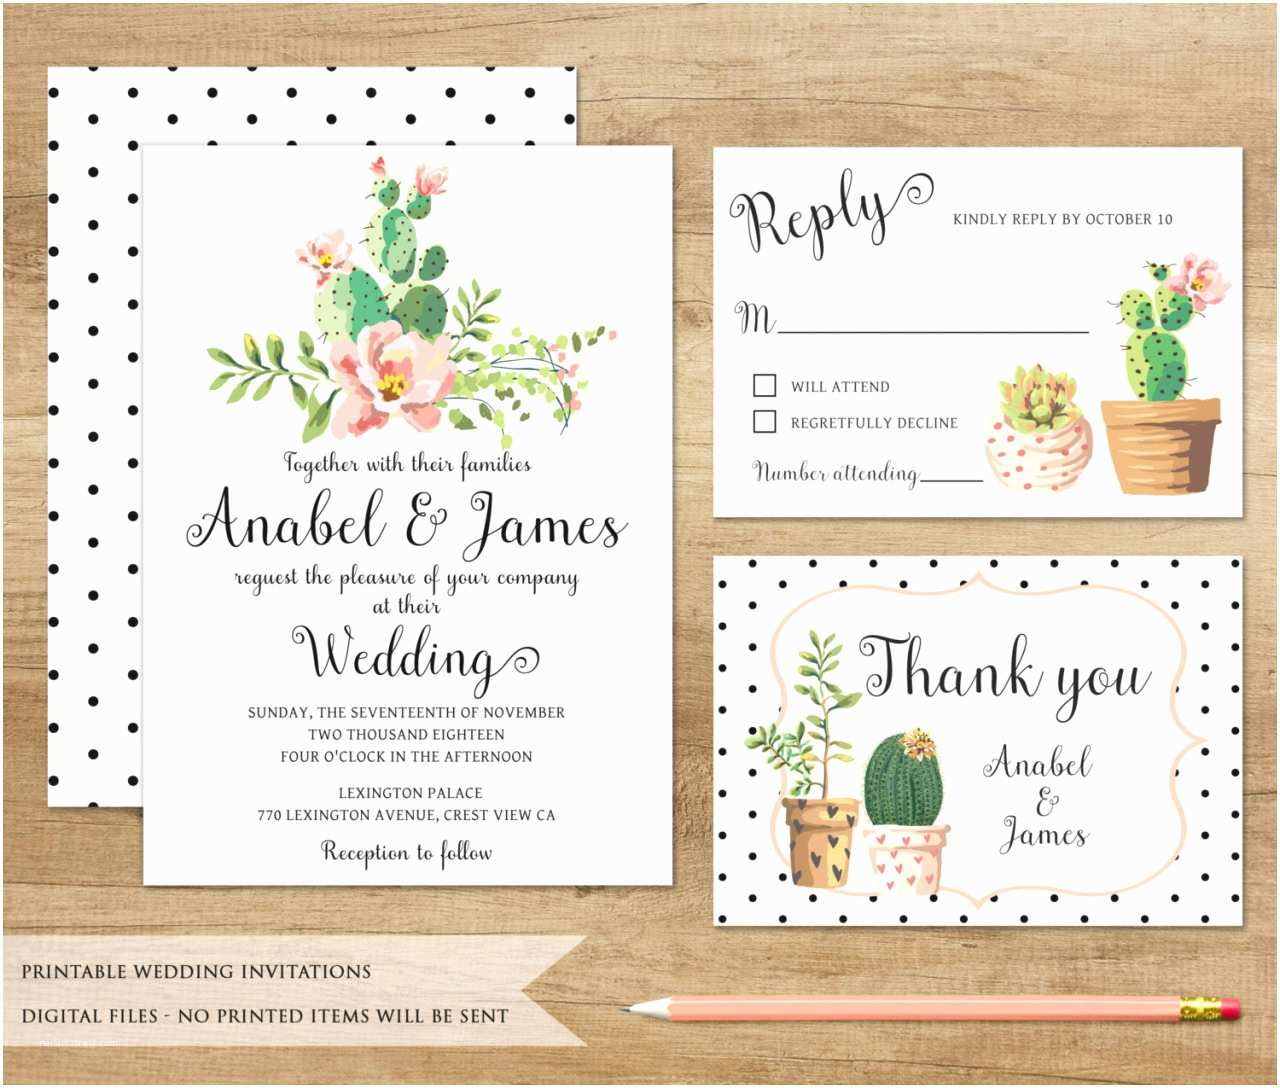 Digital Wedding Invitations Create Own Digital Wedding Invitations Ideas